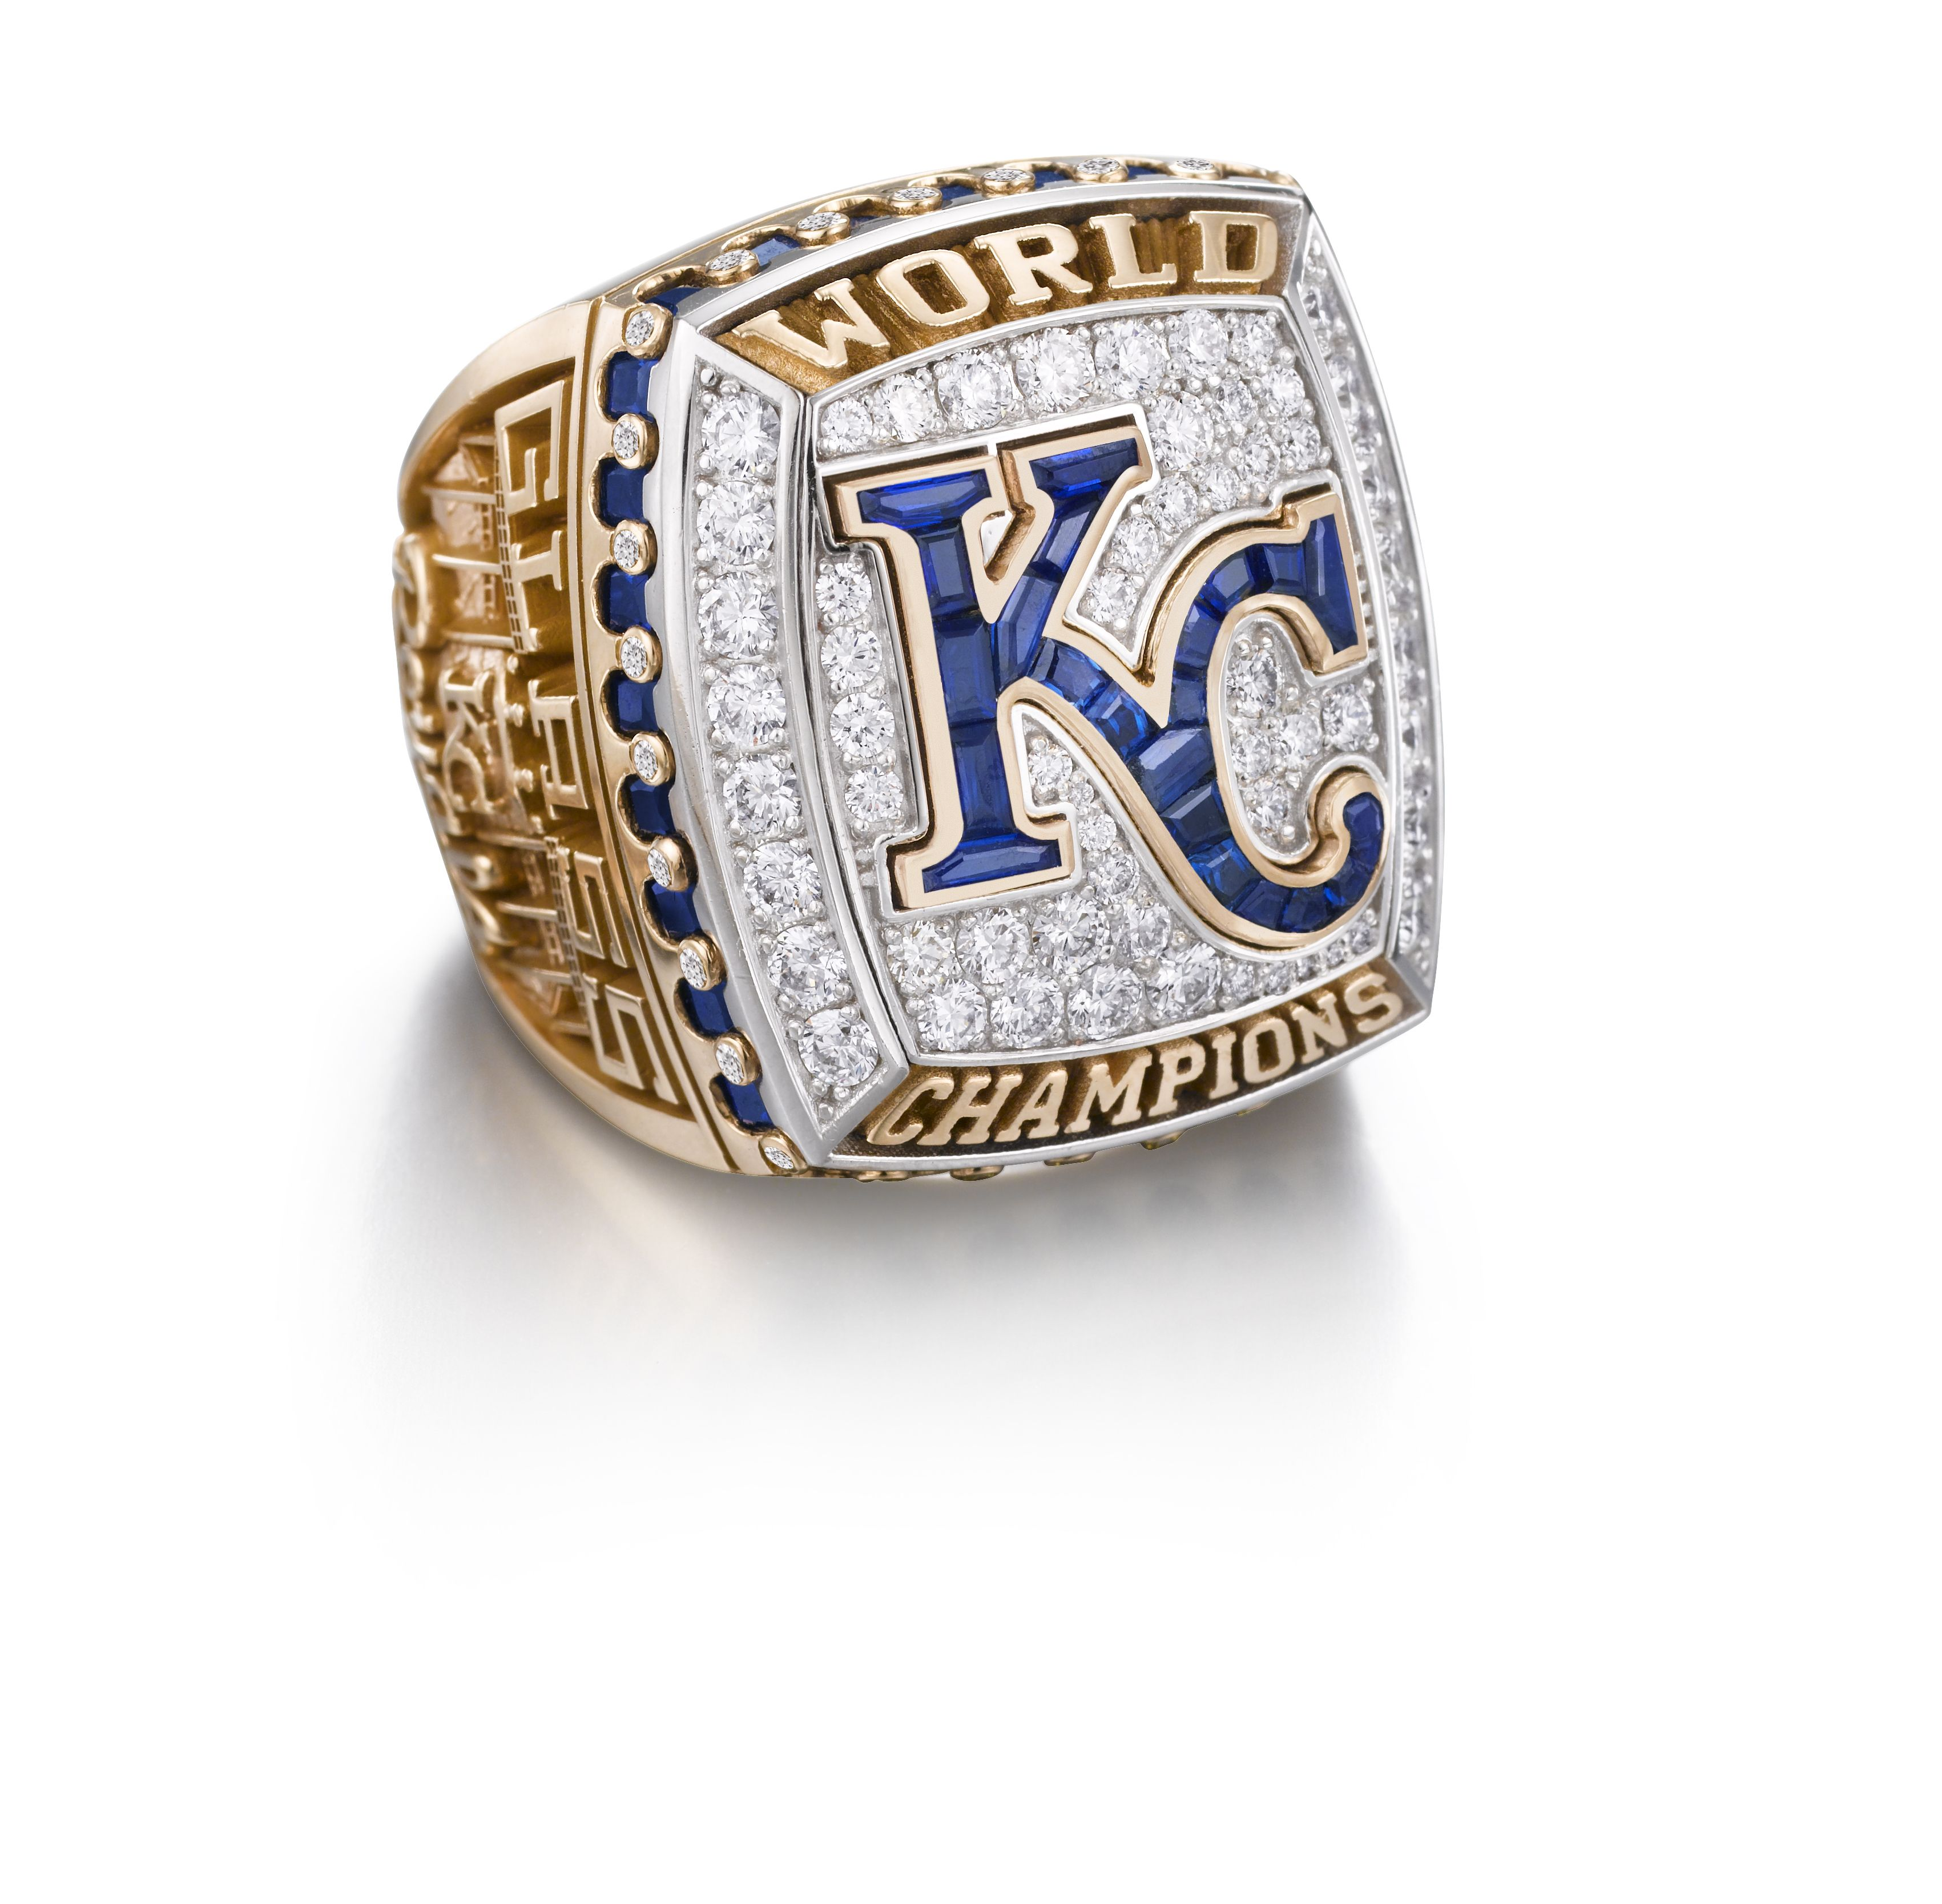 Kansas City Royals Presented With 2015 World Series Championship Rings By Jostens Rings Championship Rings Super Bowl Rings